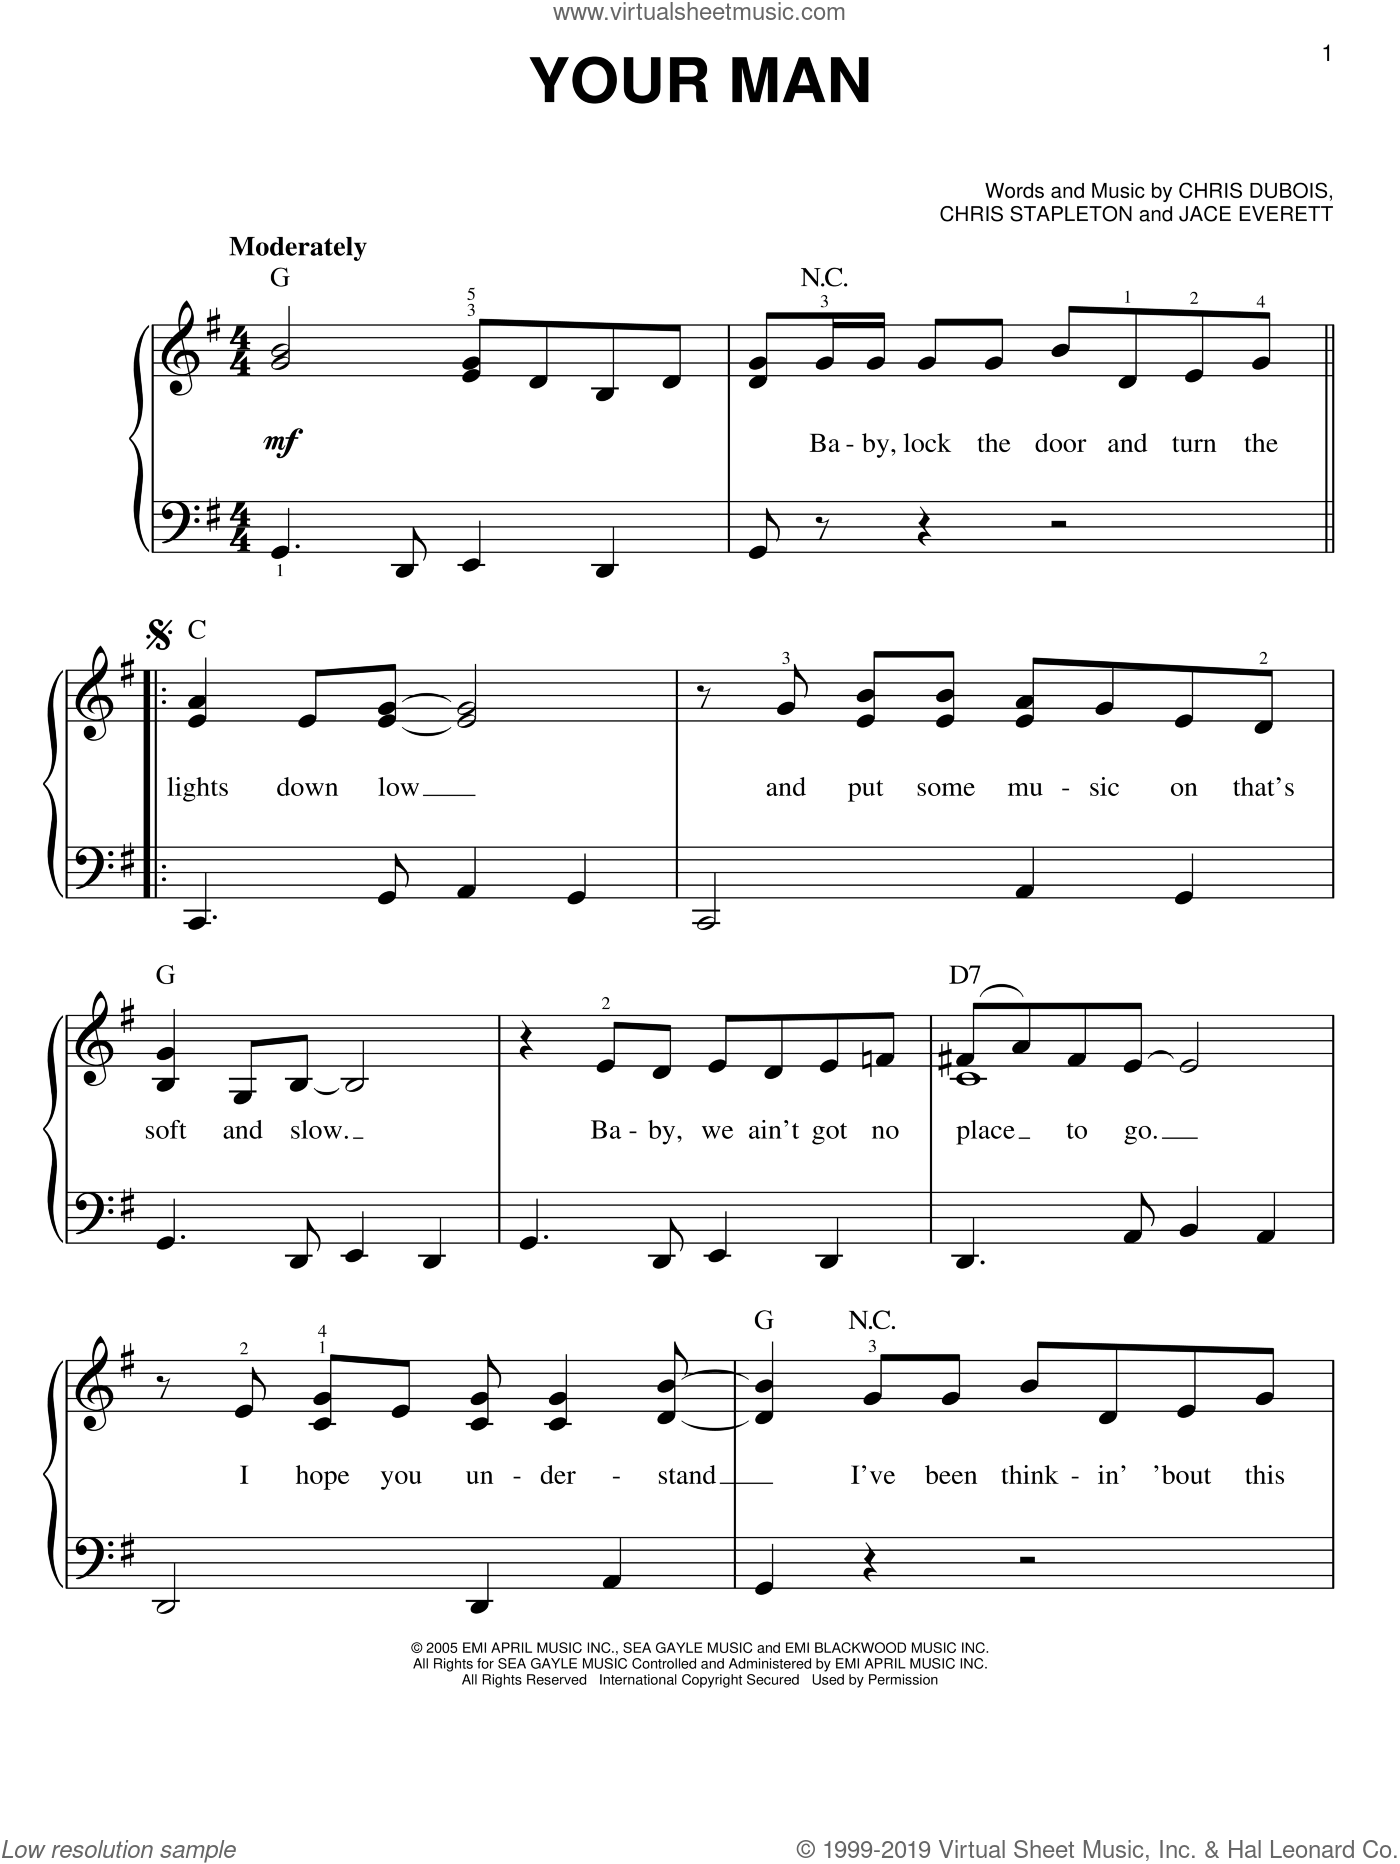 Your Man sheet music for piano solo by Jace Everett